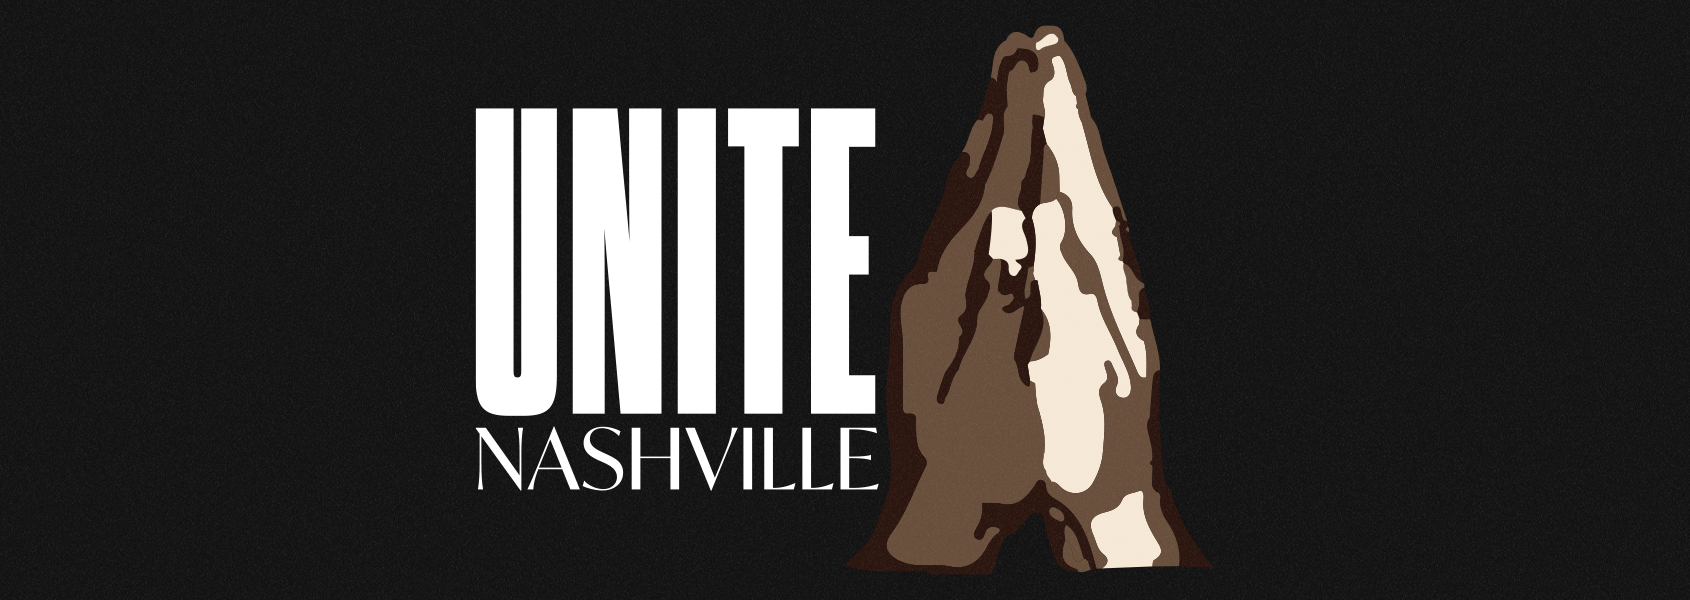 Unite Nashville header graphic